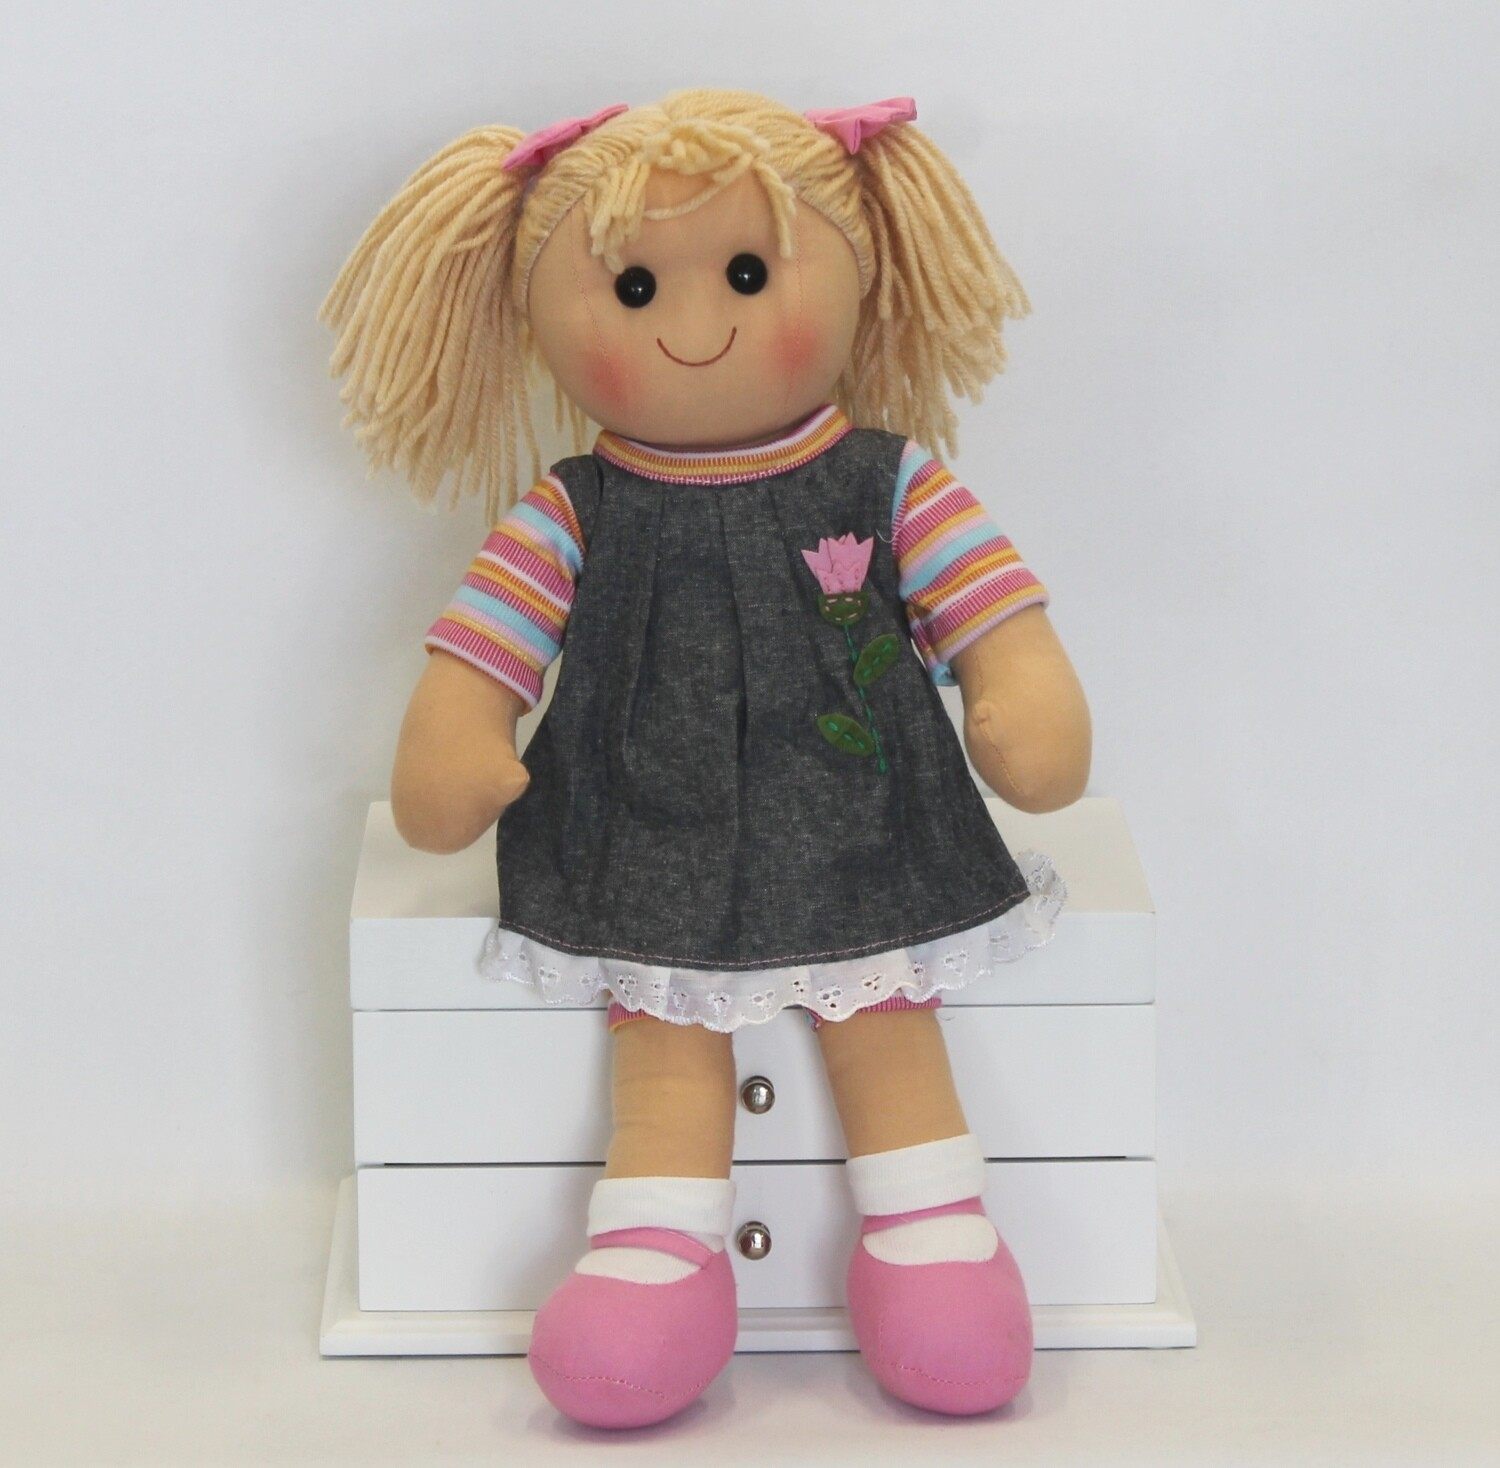 Collectable Doll - Lexi